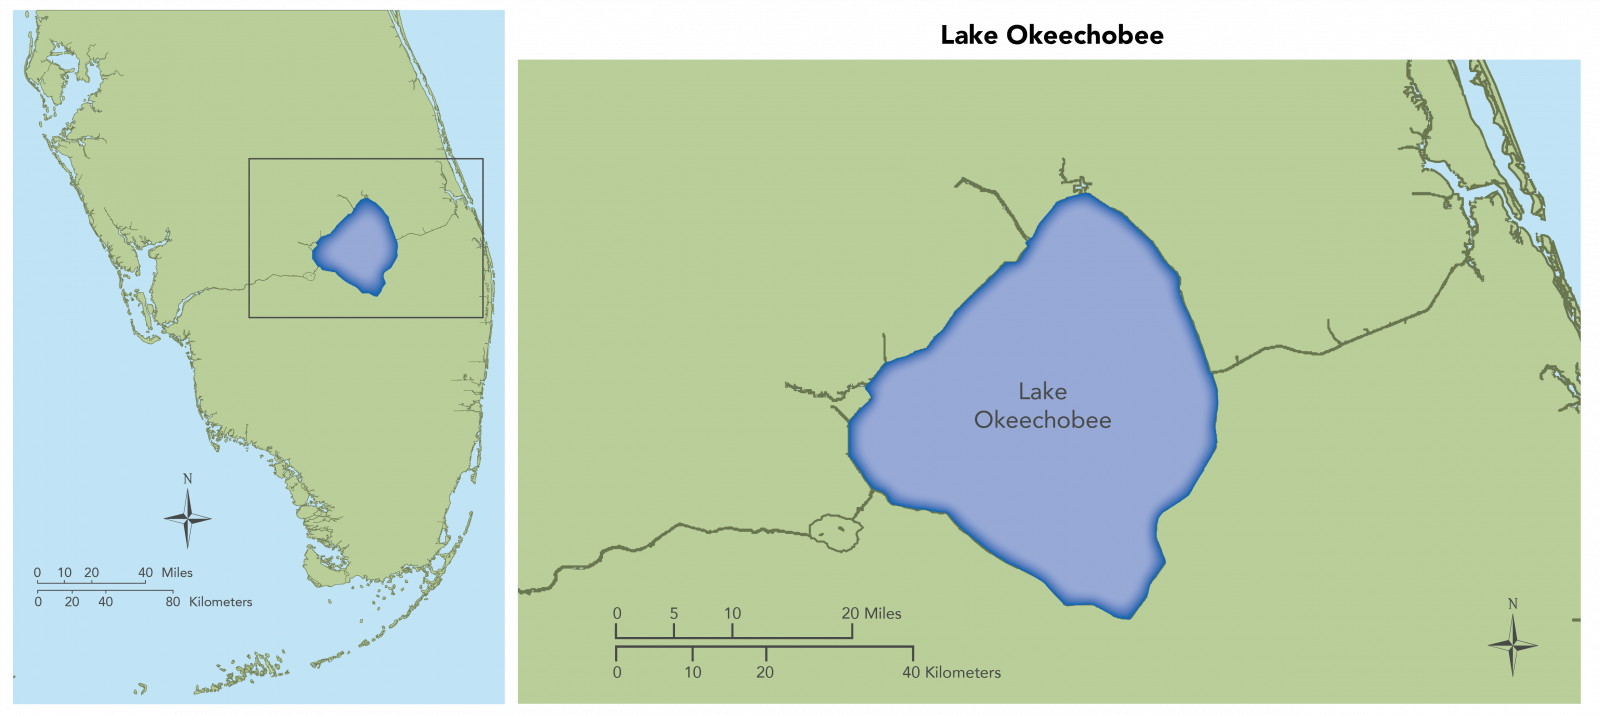 Map showing long view and detail view of Lake Okeechobee. This includes the Caloosahatchee River Estuary, the St. Lucie Estuary and Southern Indian River Lagoon, and the Loxahatchee River Estuary